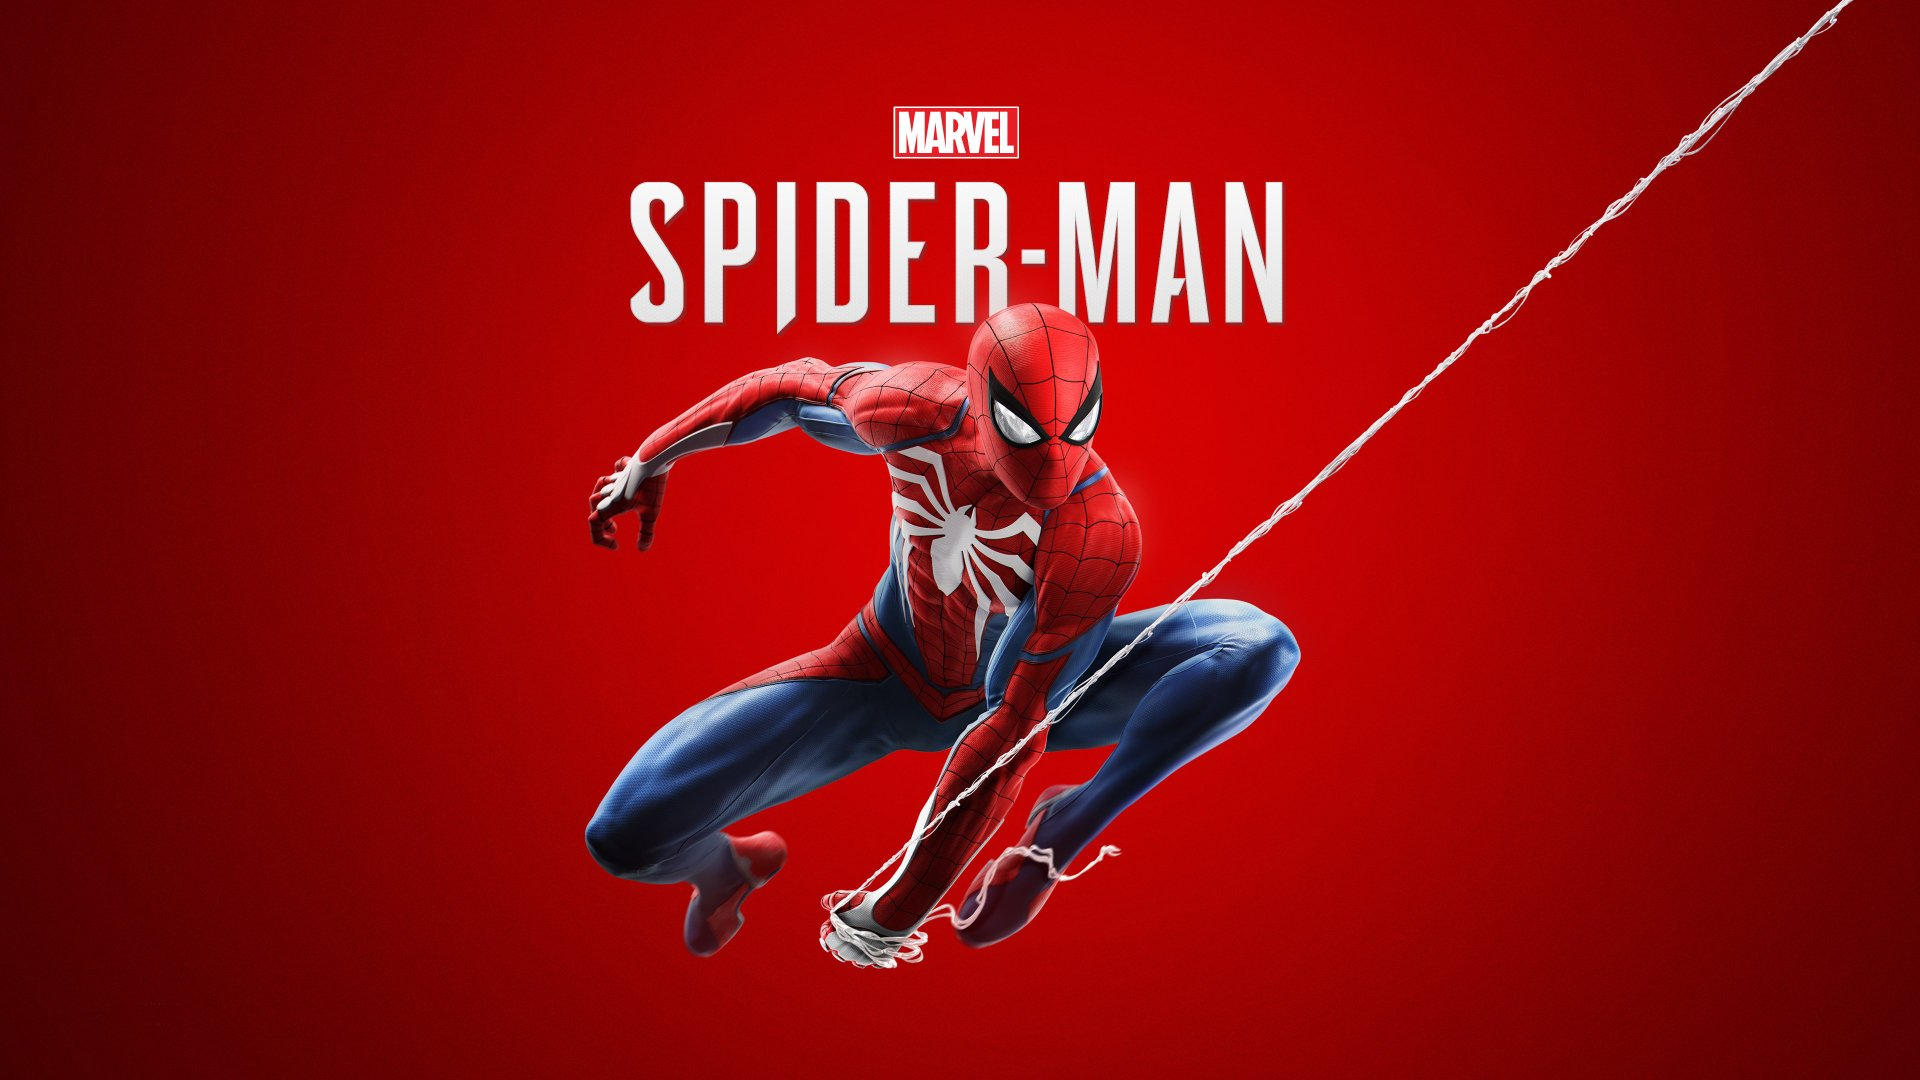 10 Marvels Spider Man Hd Wallpapers High Quality Background